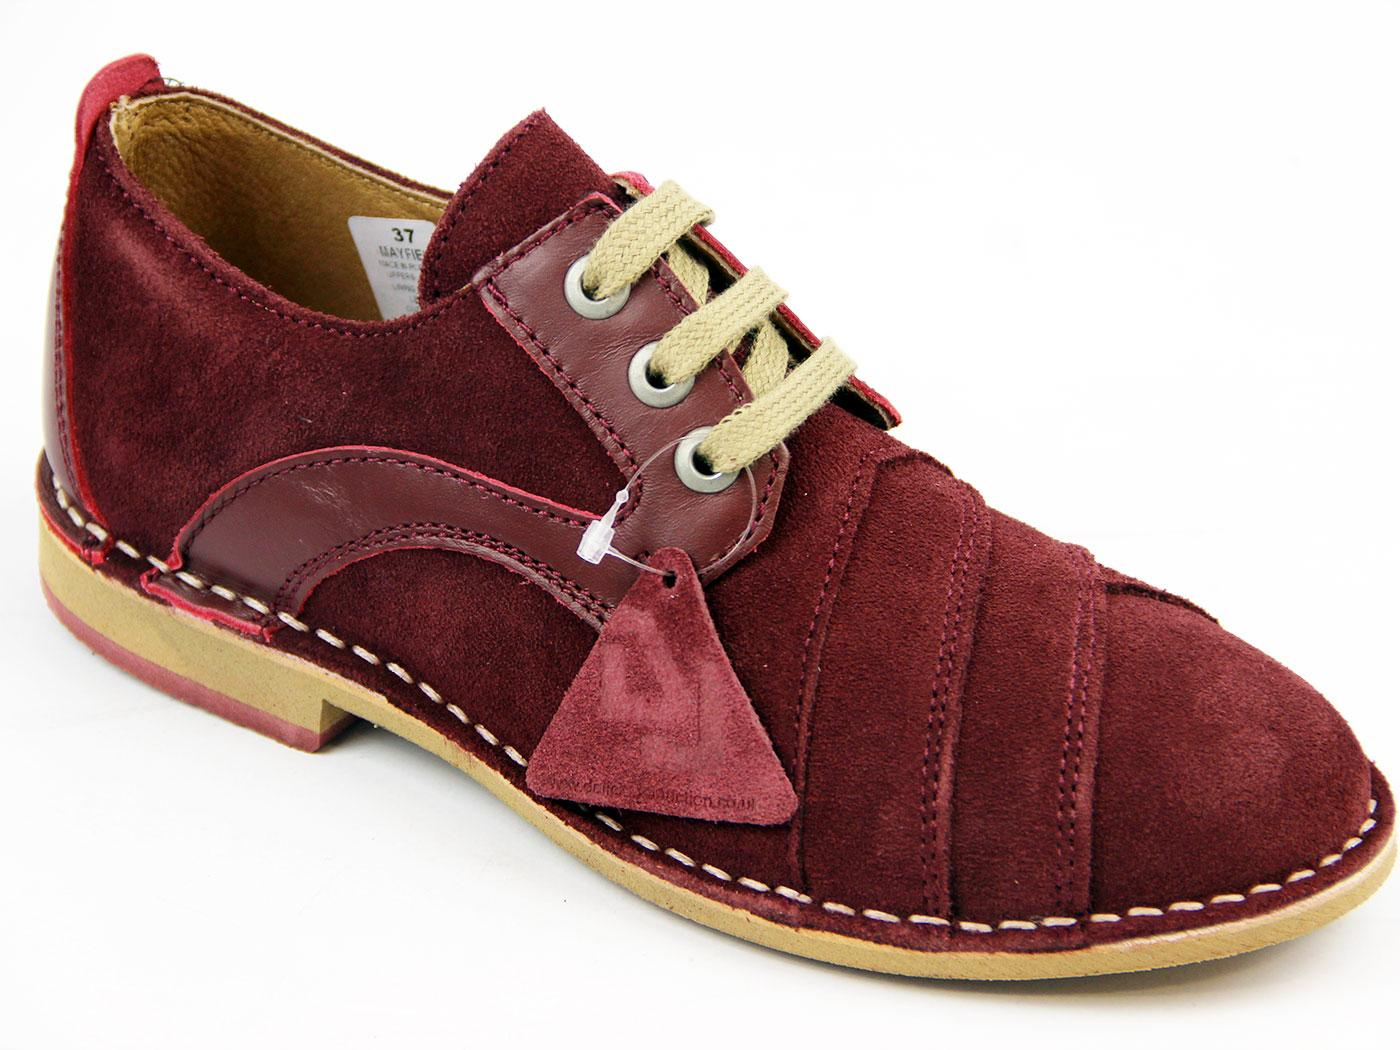 Mayfield DELICIOUS JUNCTION Mod Weave Suede Shoes